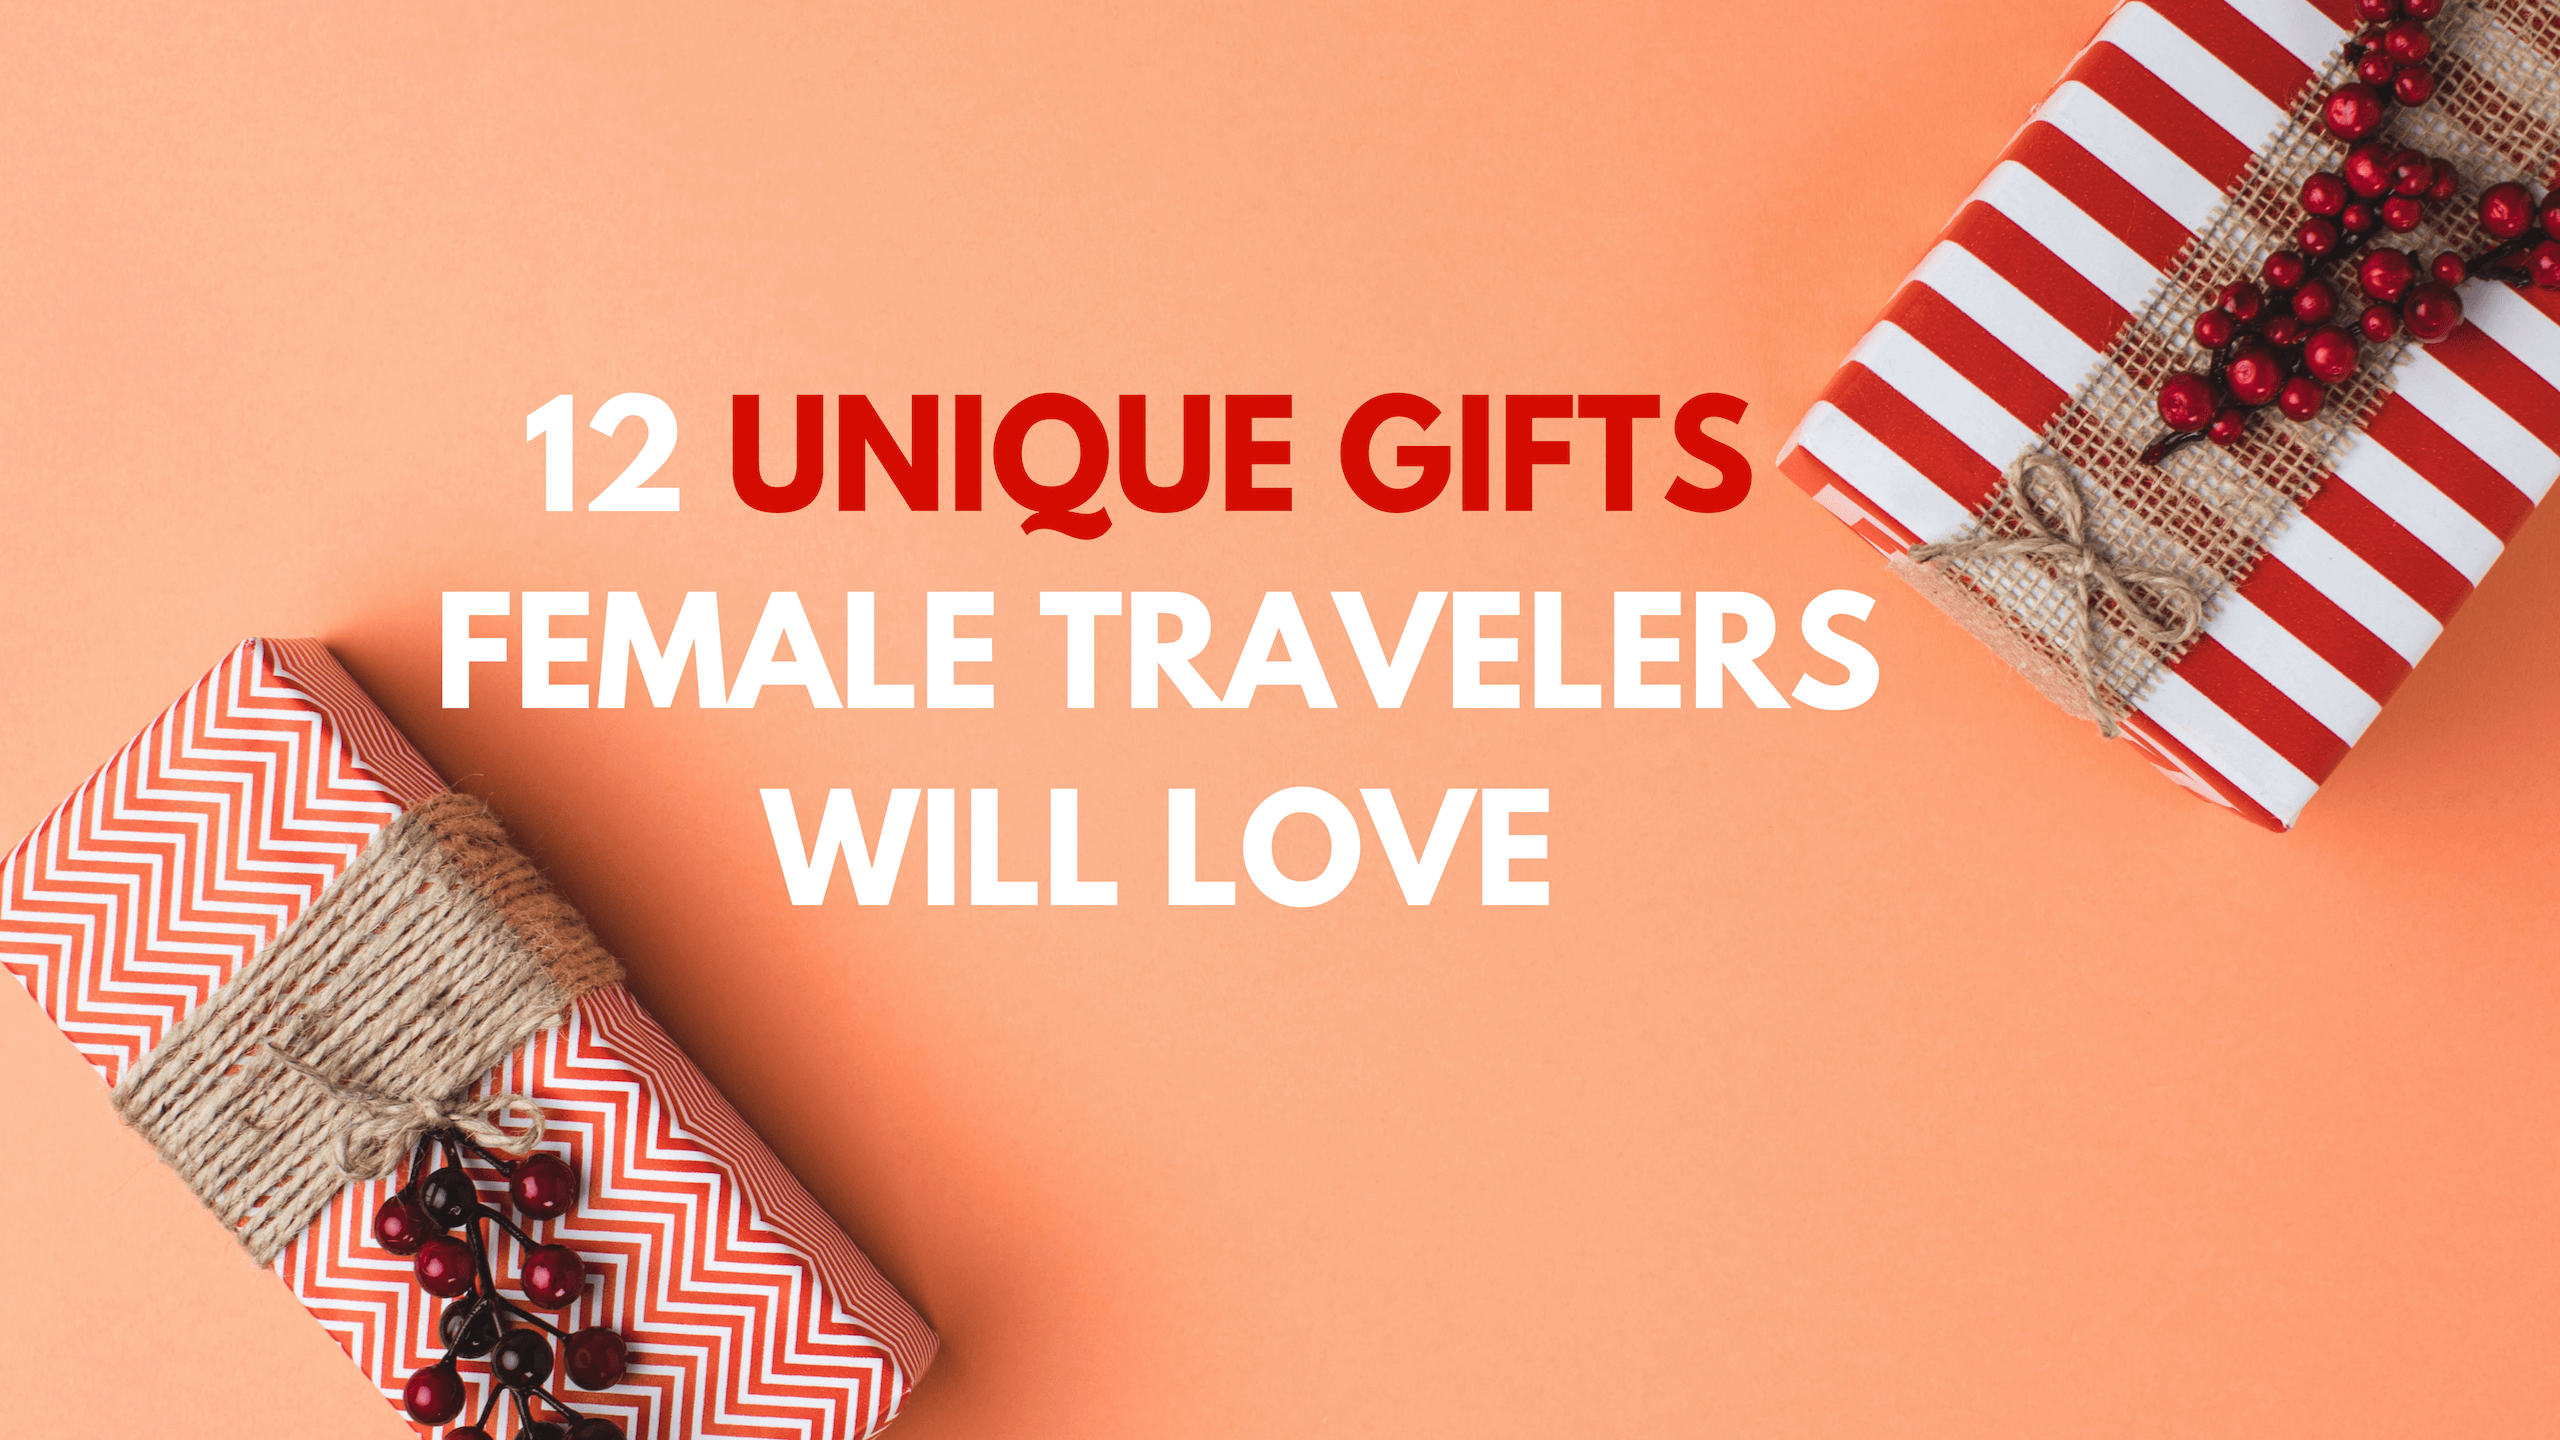 12 Unique Gifts for Female Travelers - Feature Image